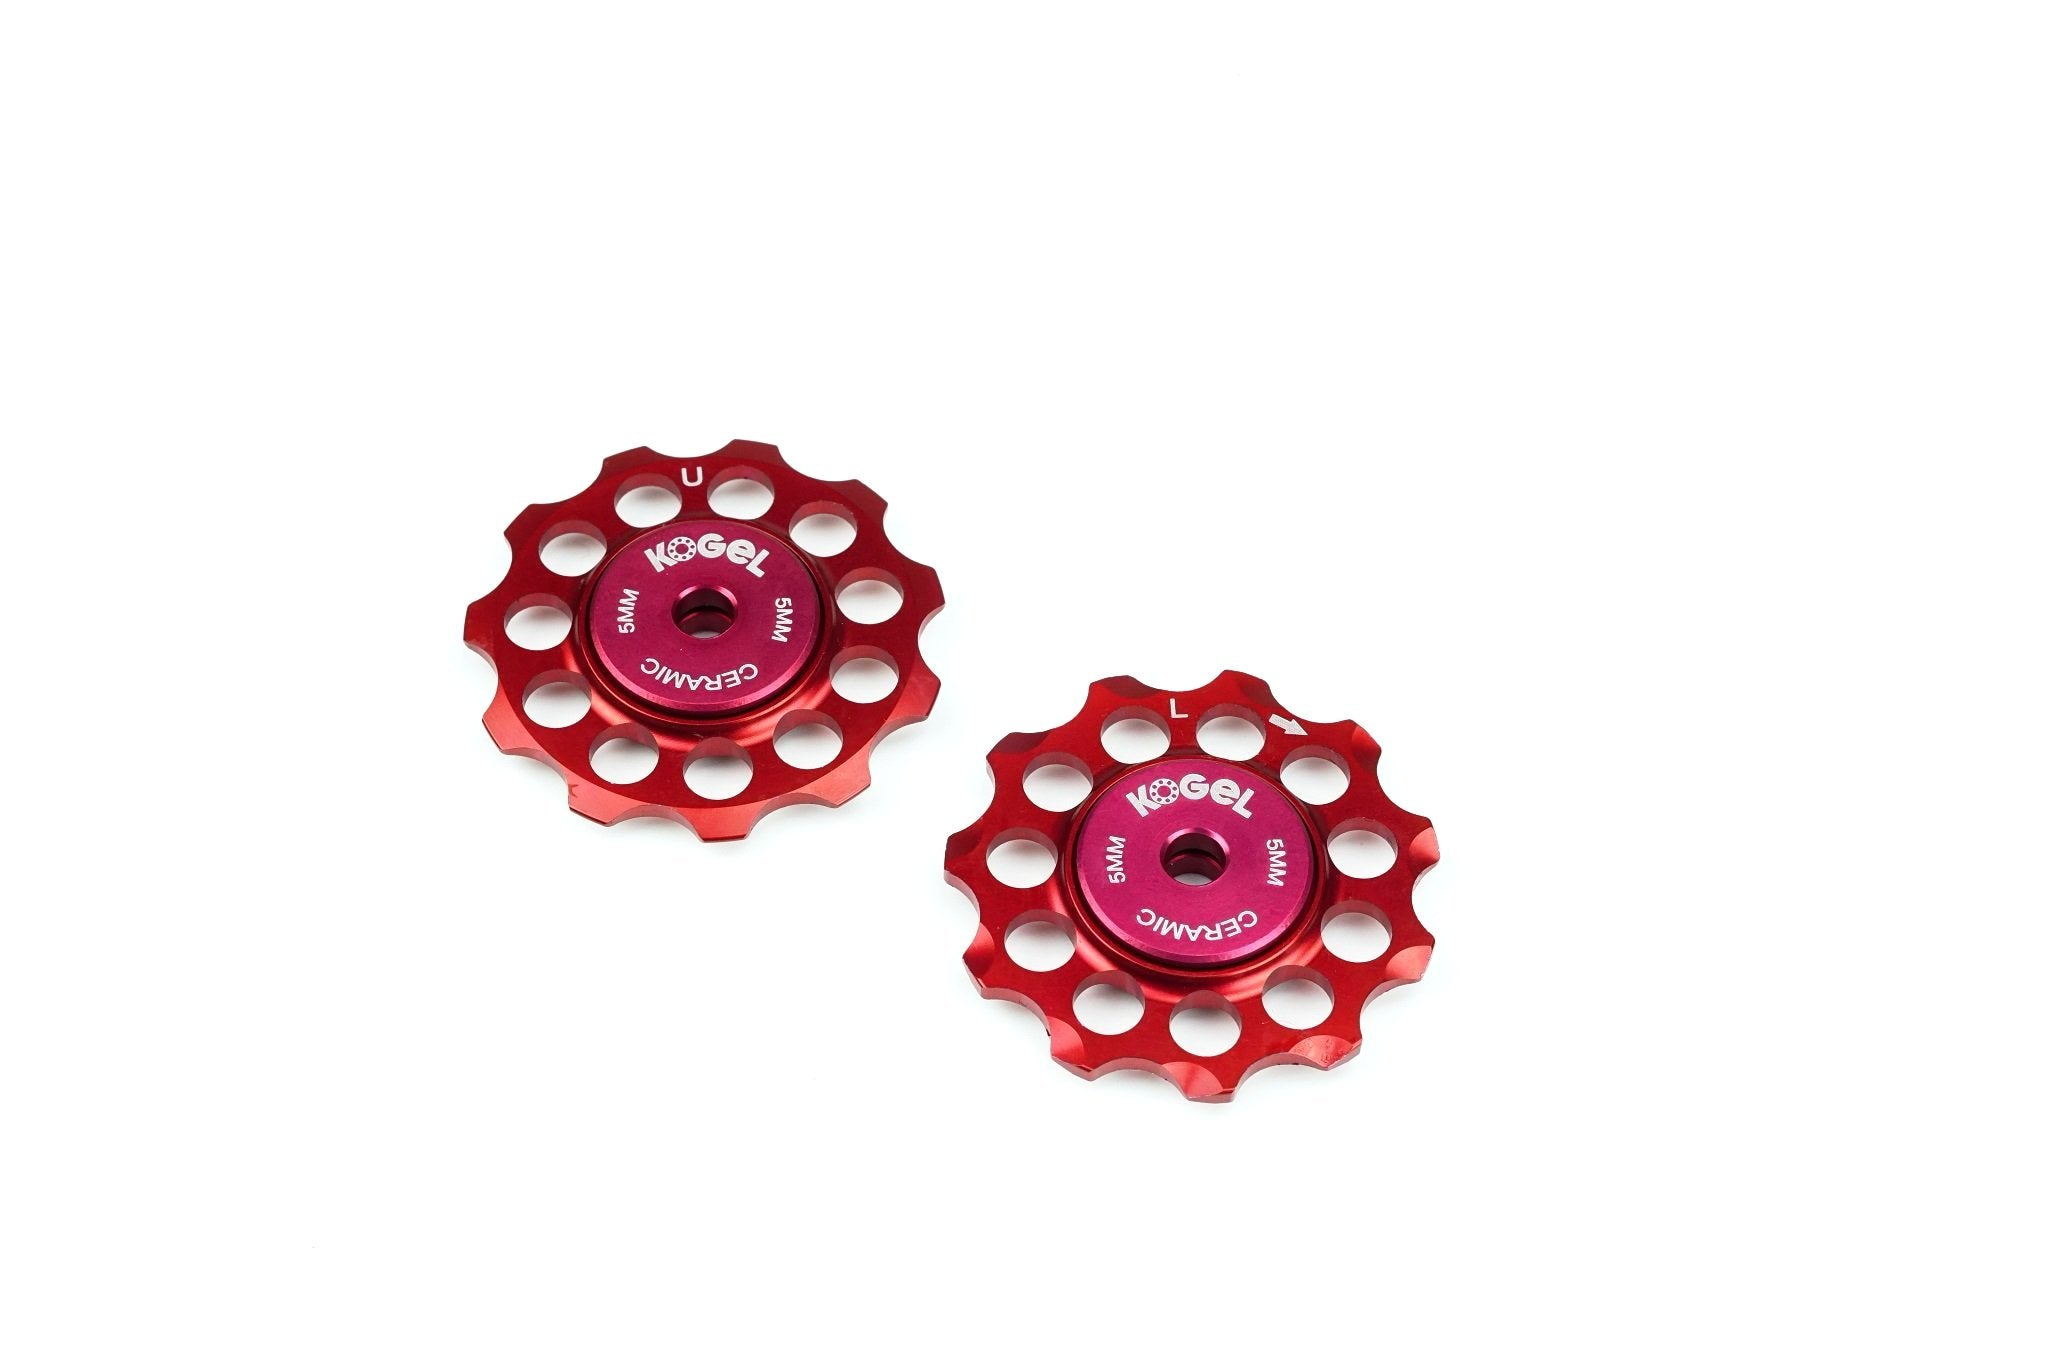 Fire Engine Red Aluminum derailleur pulleys with ceramic bearings